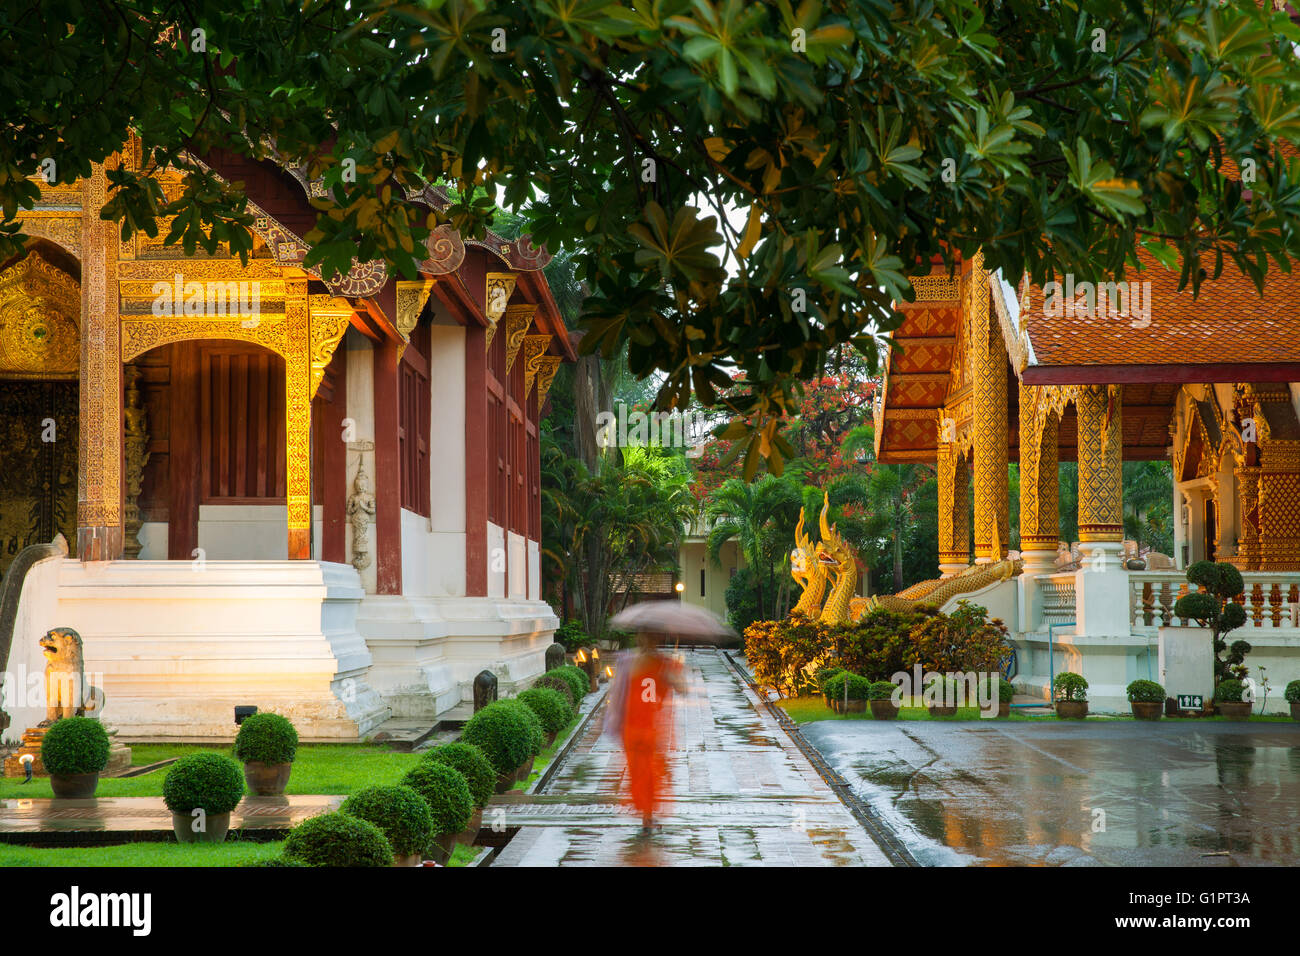 Monk walking under umbrella at the Wat Phra Singh Temple, Chiang Mai, Thailand. Chiang Mai's most revered temple. - Stock Image